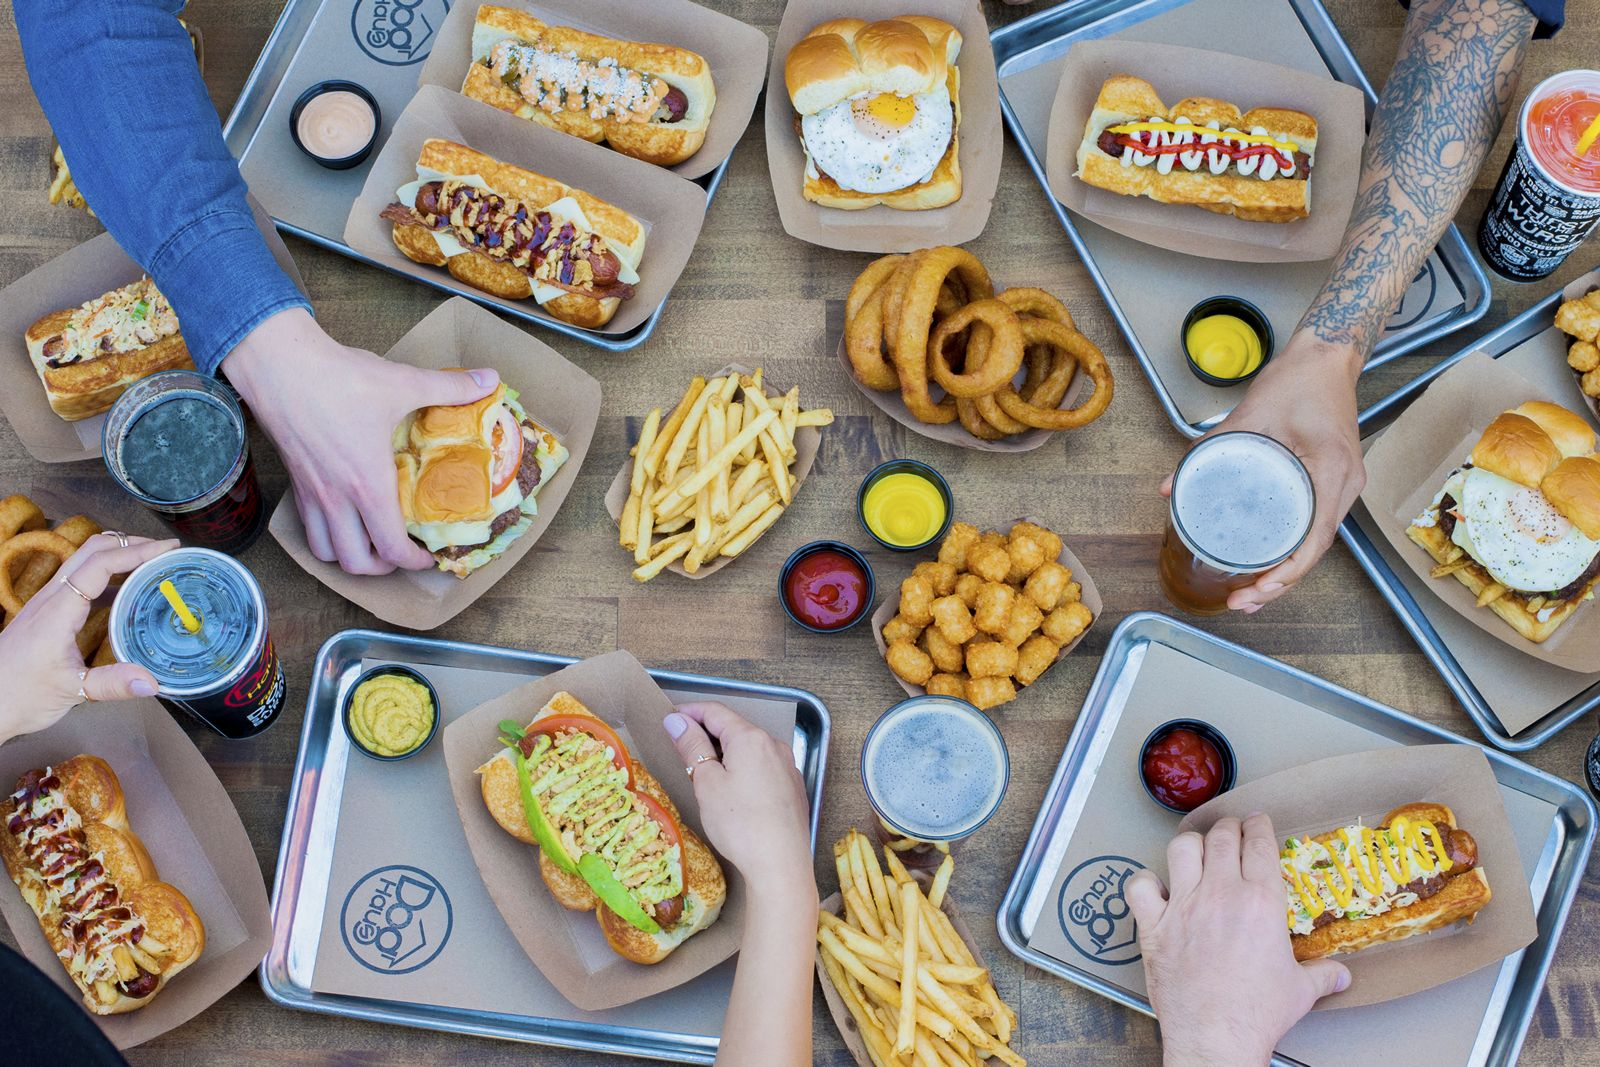 Dog Haus Prepares To Bring The Absolute Würst To Decatur